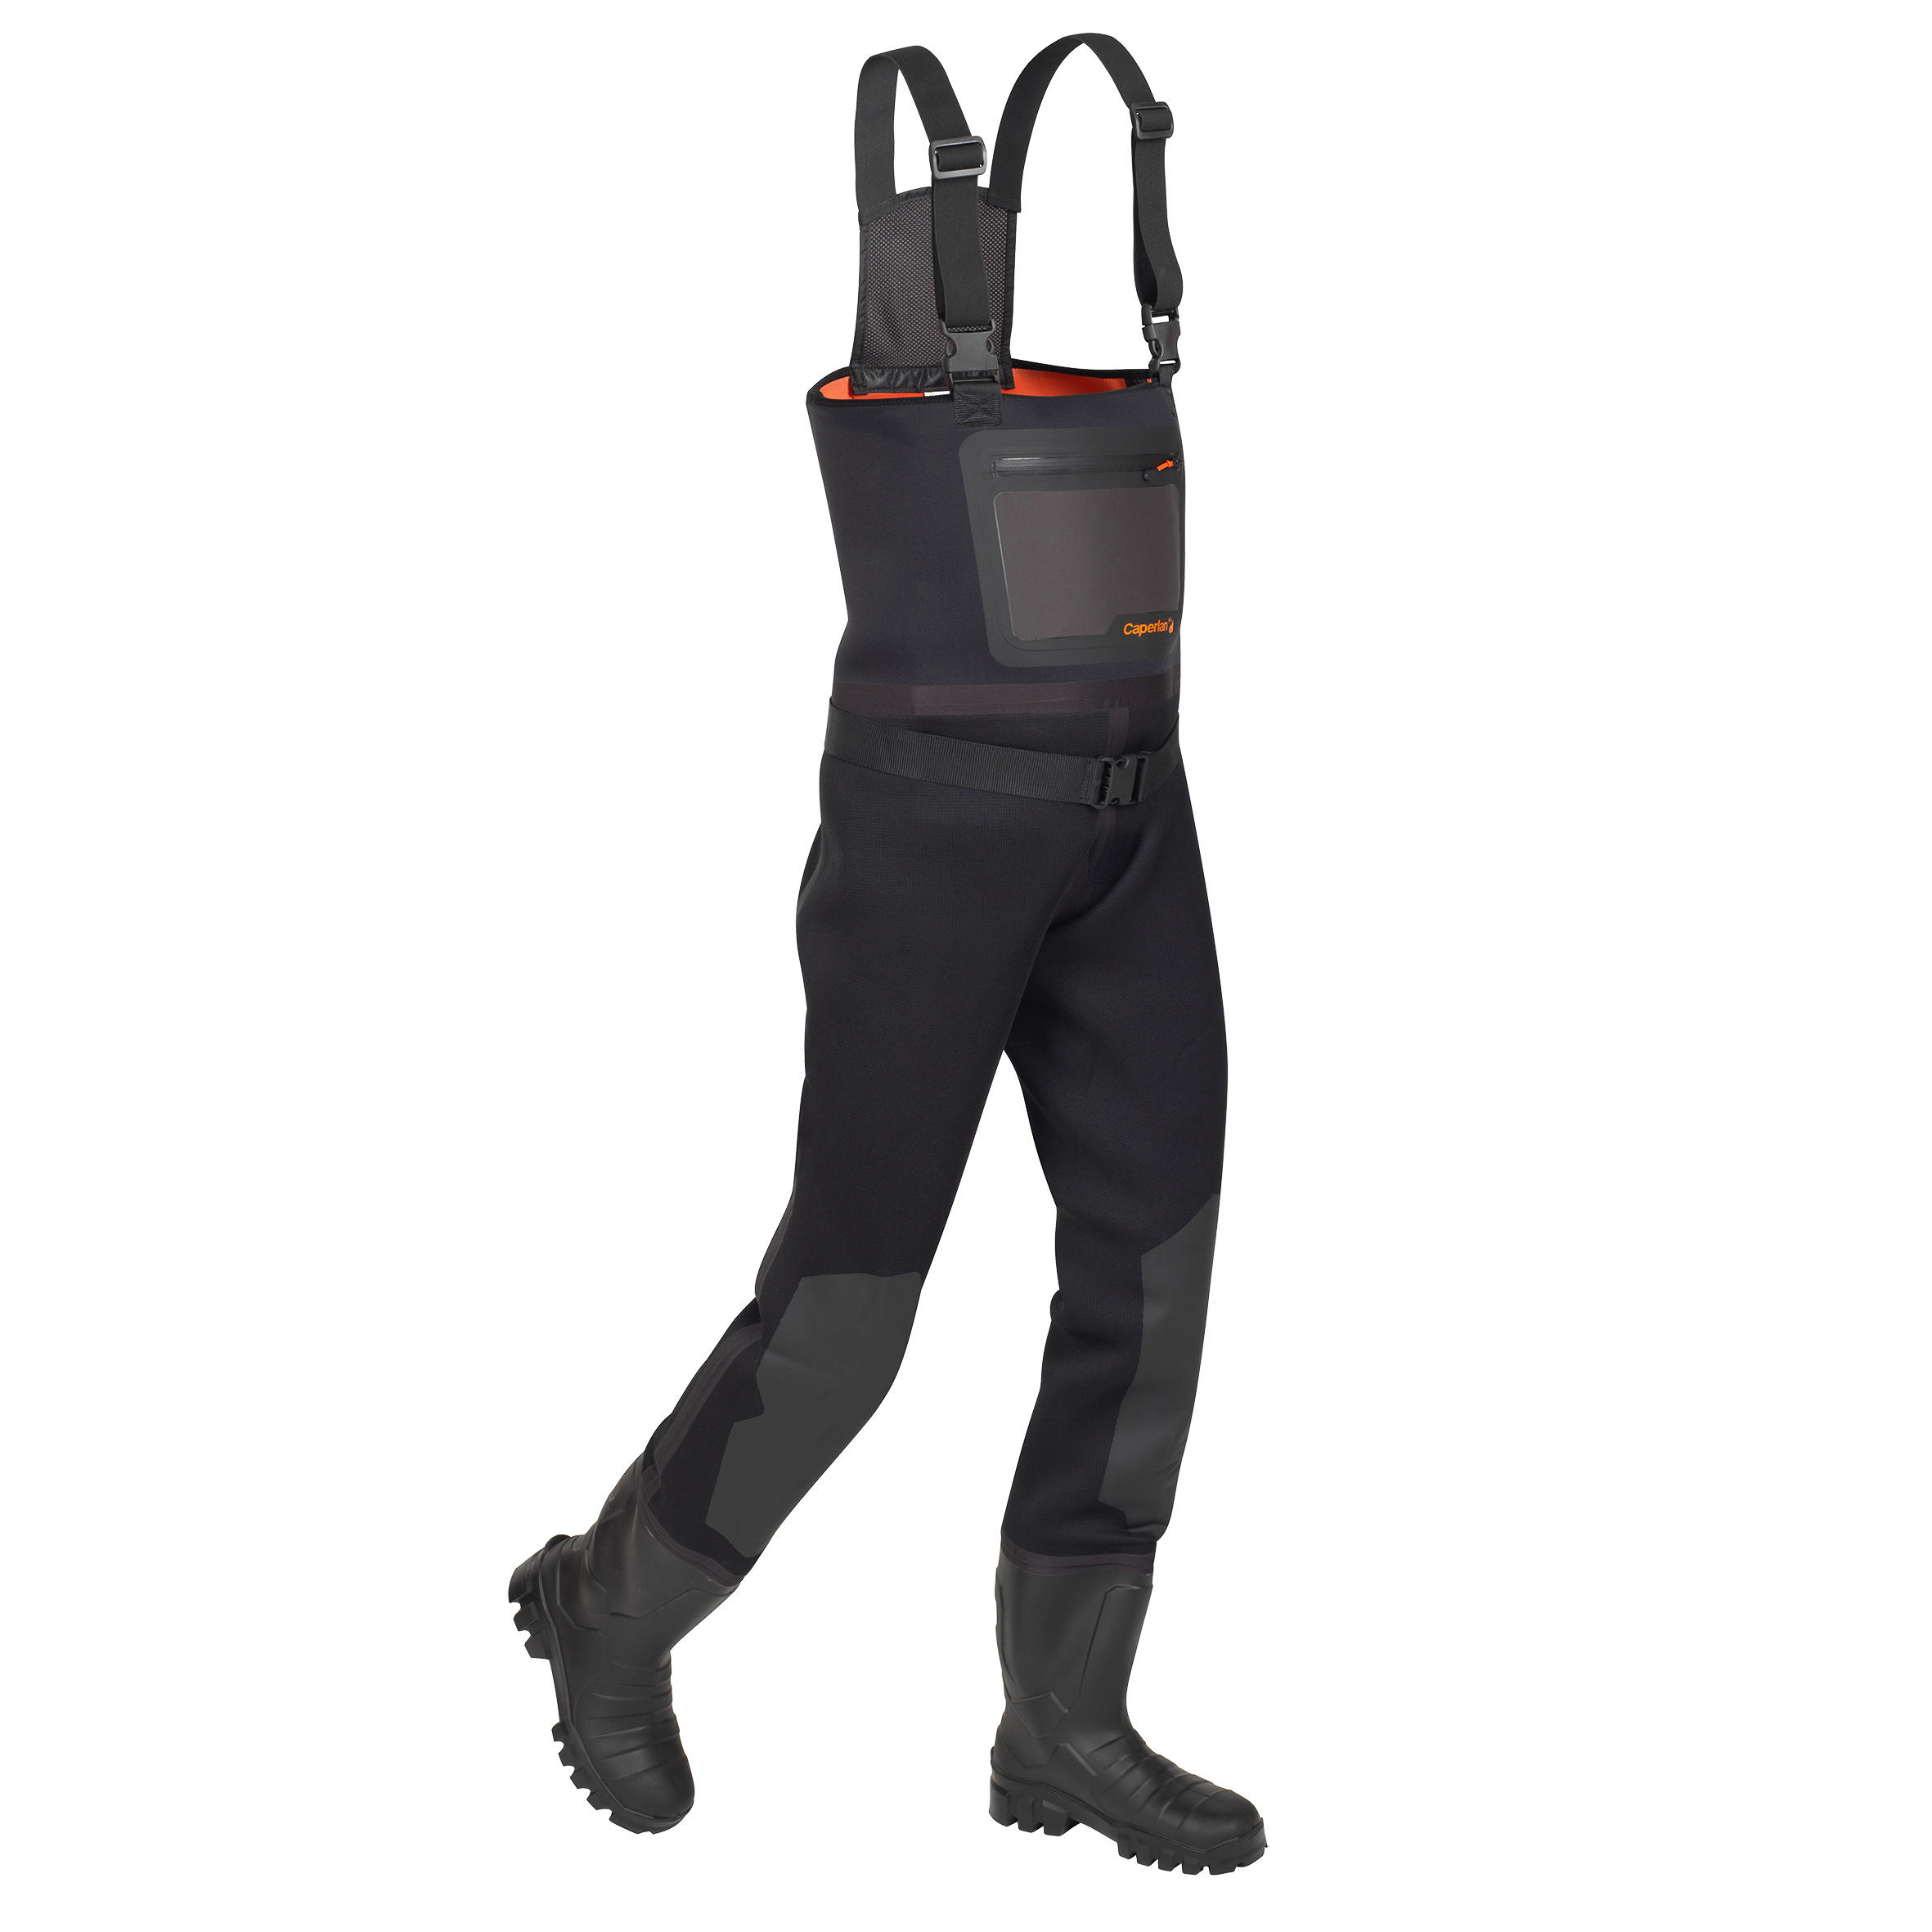 Waders for Men Waterproof Fishing Pants With Boots Size of 8 8.5,9,9.5,10